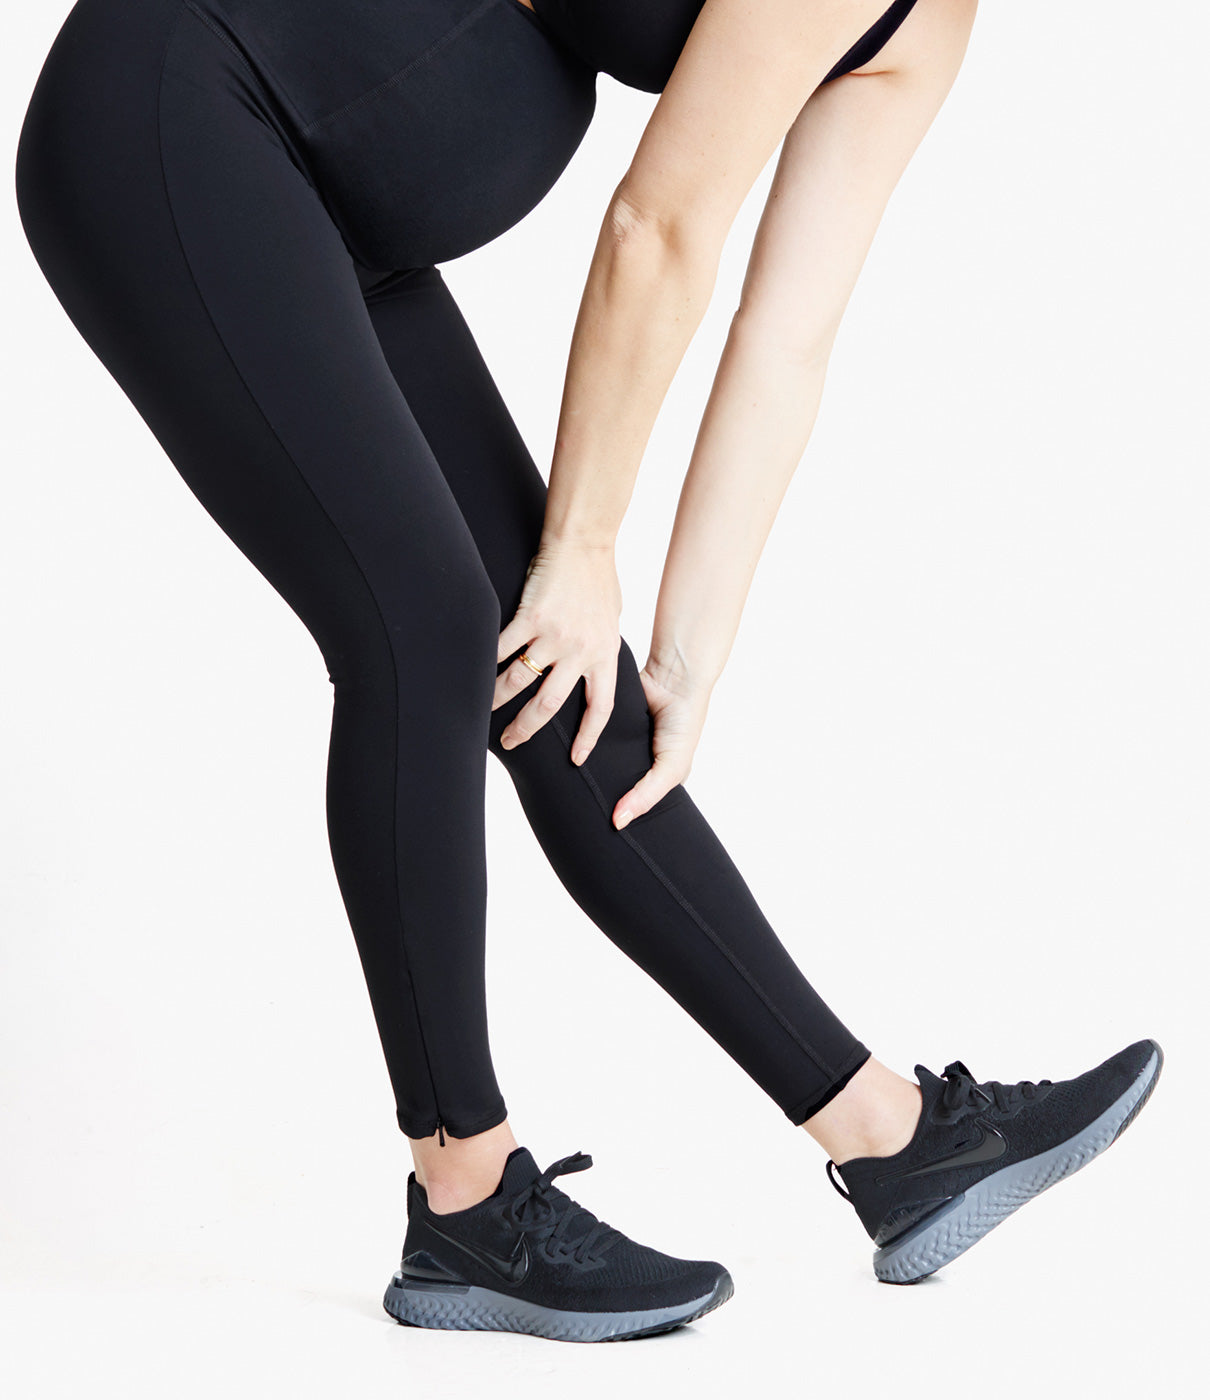 FASHION + FUNCTIONCrossover design and side zippers at ankles keeps your back and body cool. A perfect maternity yoga pant or for mamas on the go.